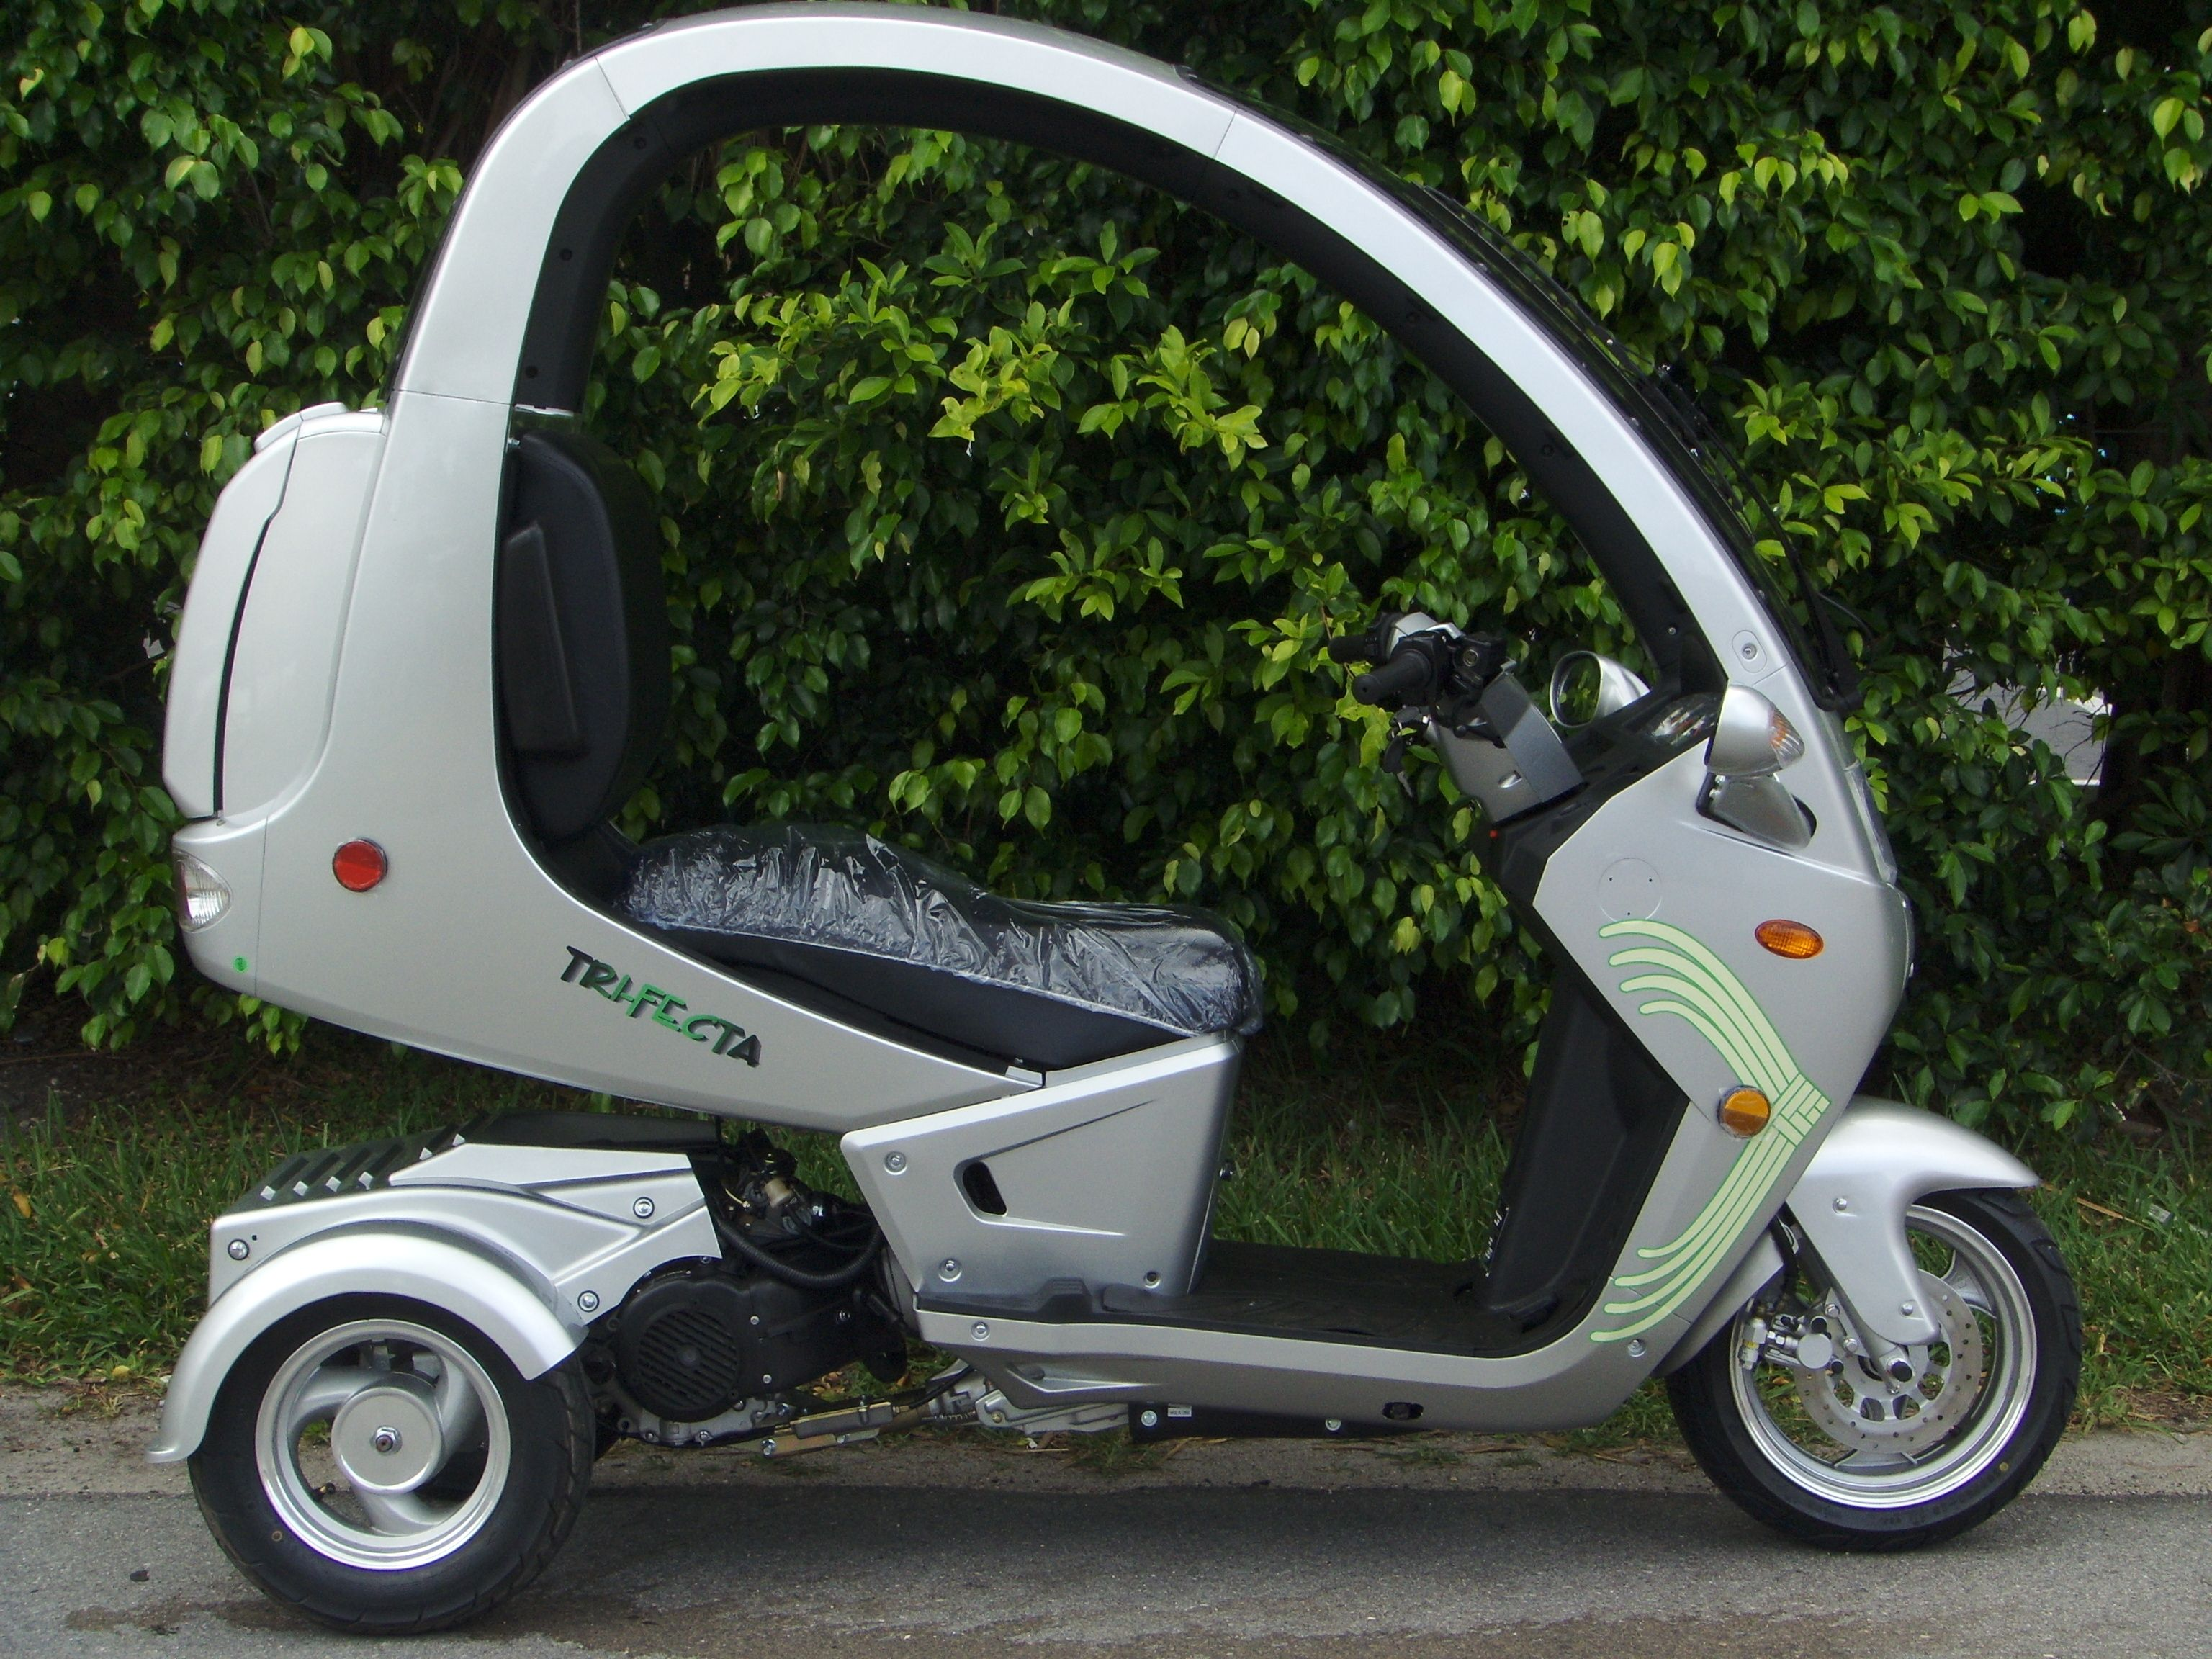 Trifecta the 3 wheel scooter gifts pinterest for Motor scooter 3 wheels